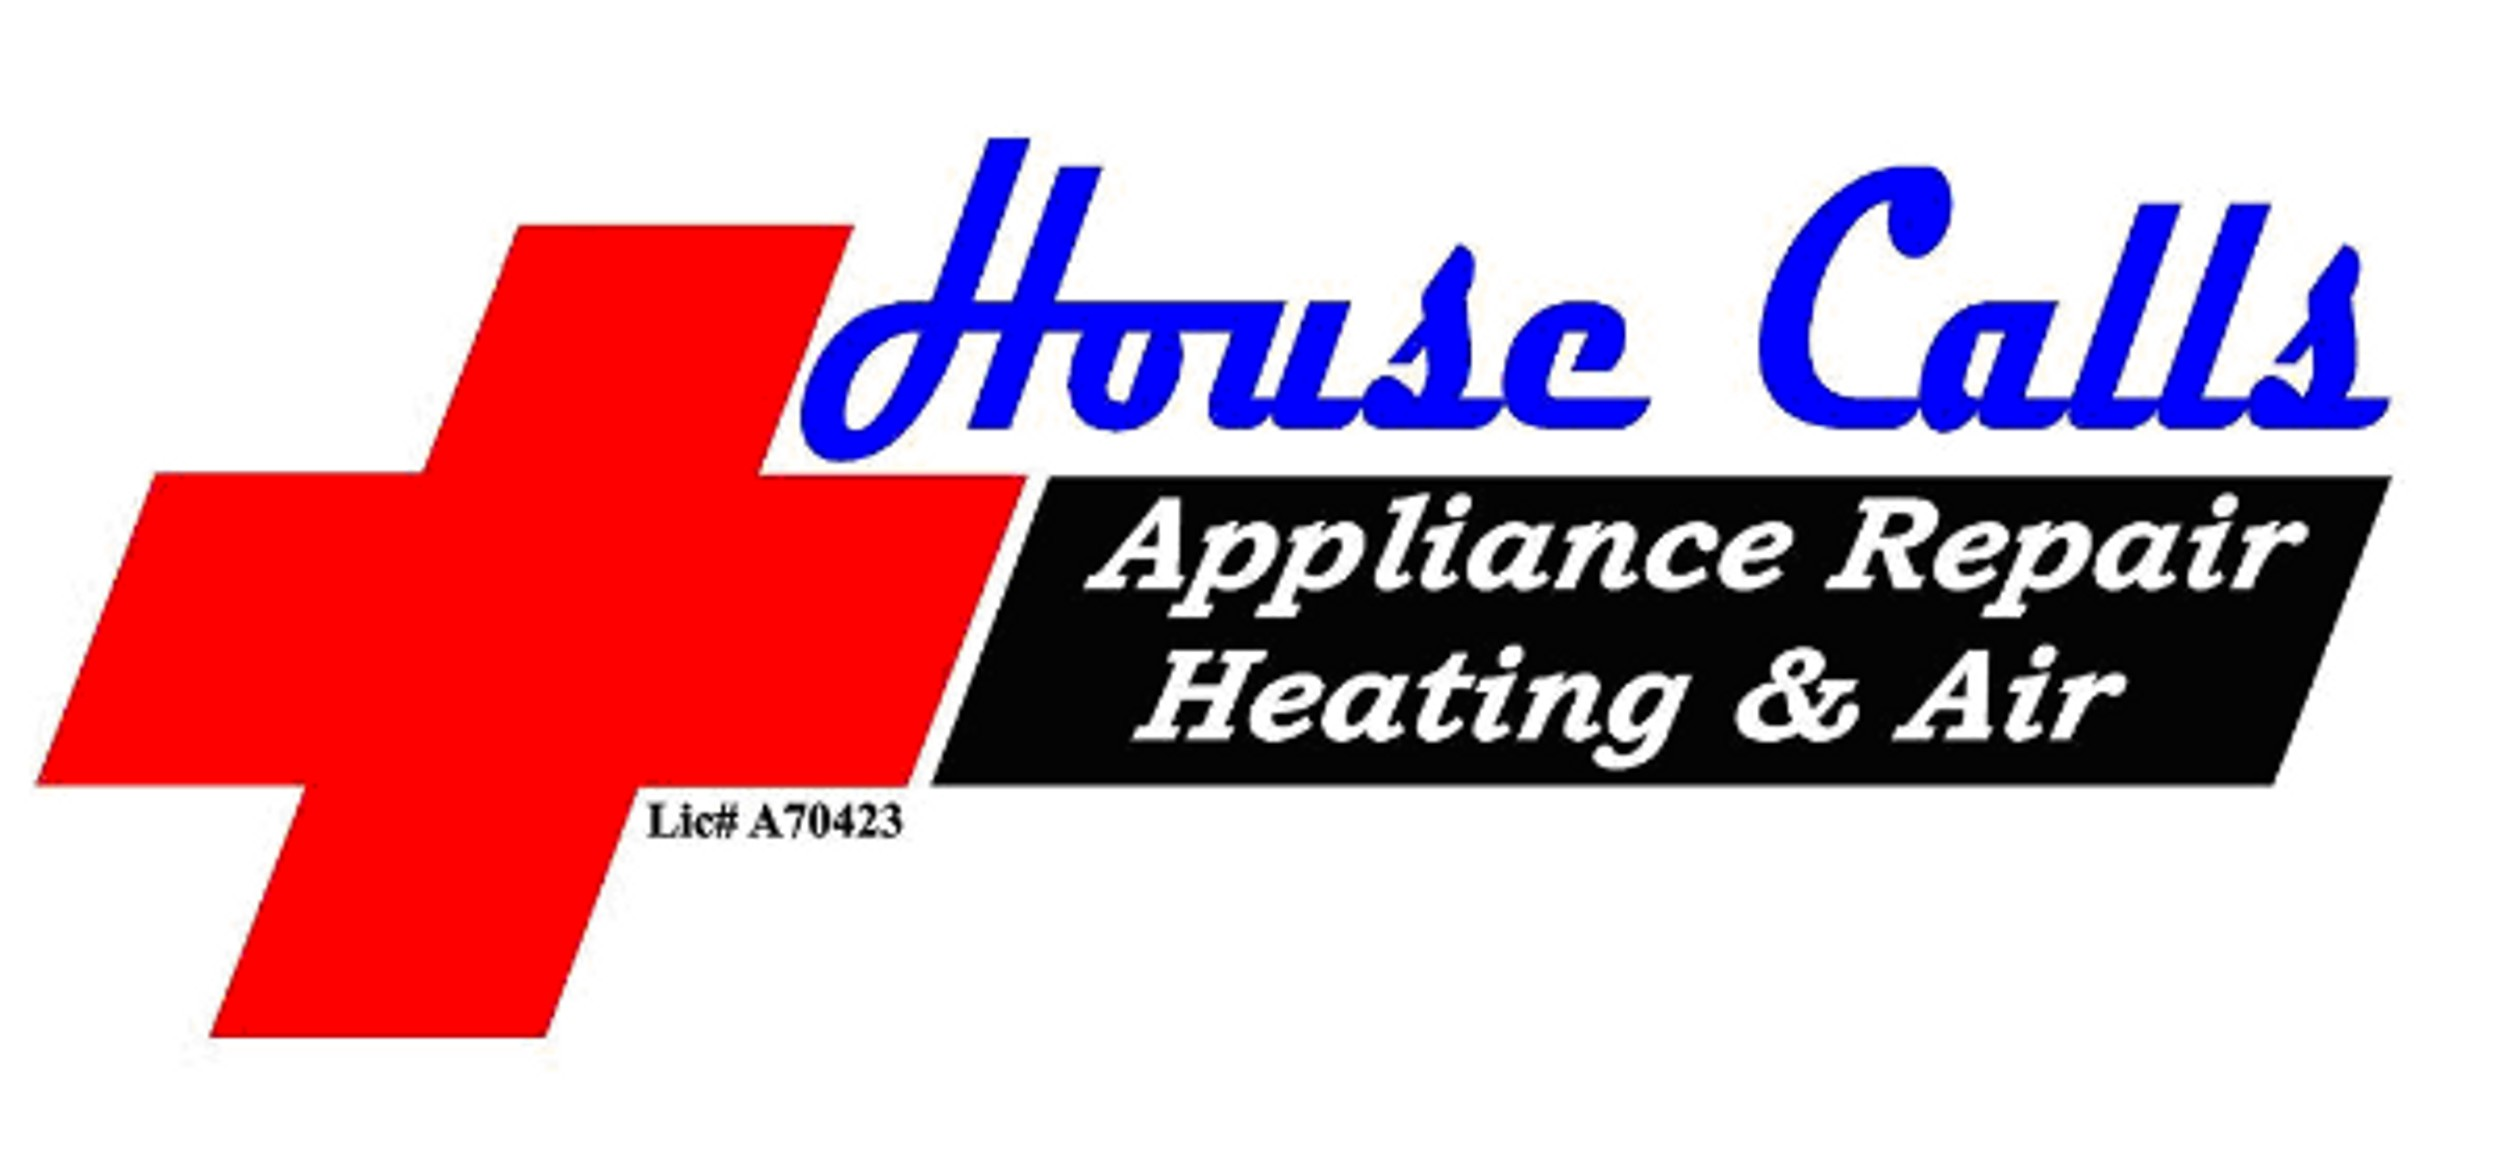 House Calls Appliance Repair logo